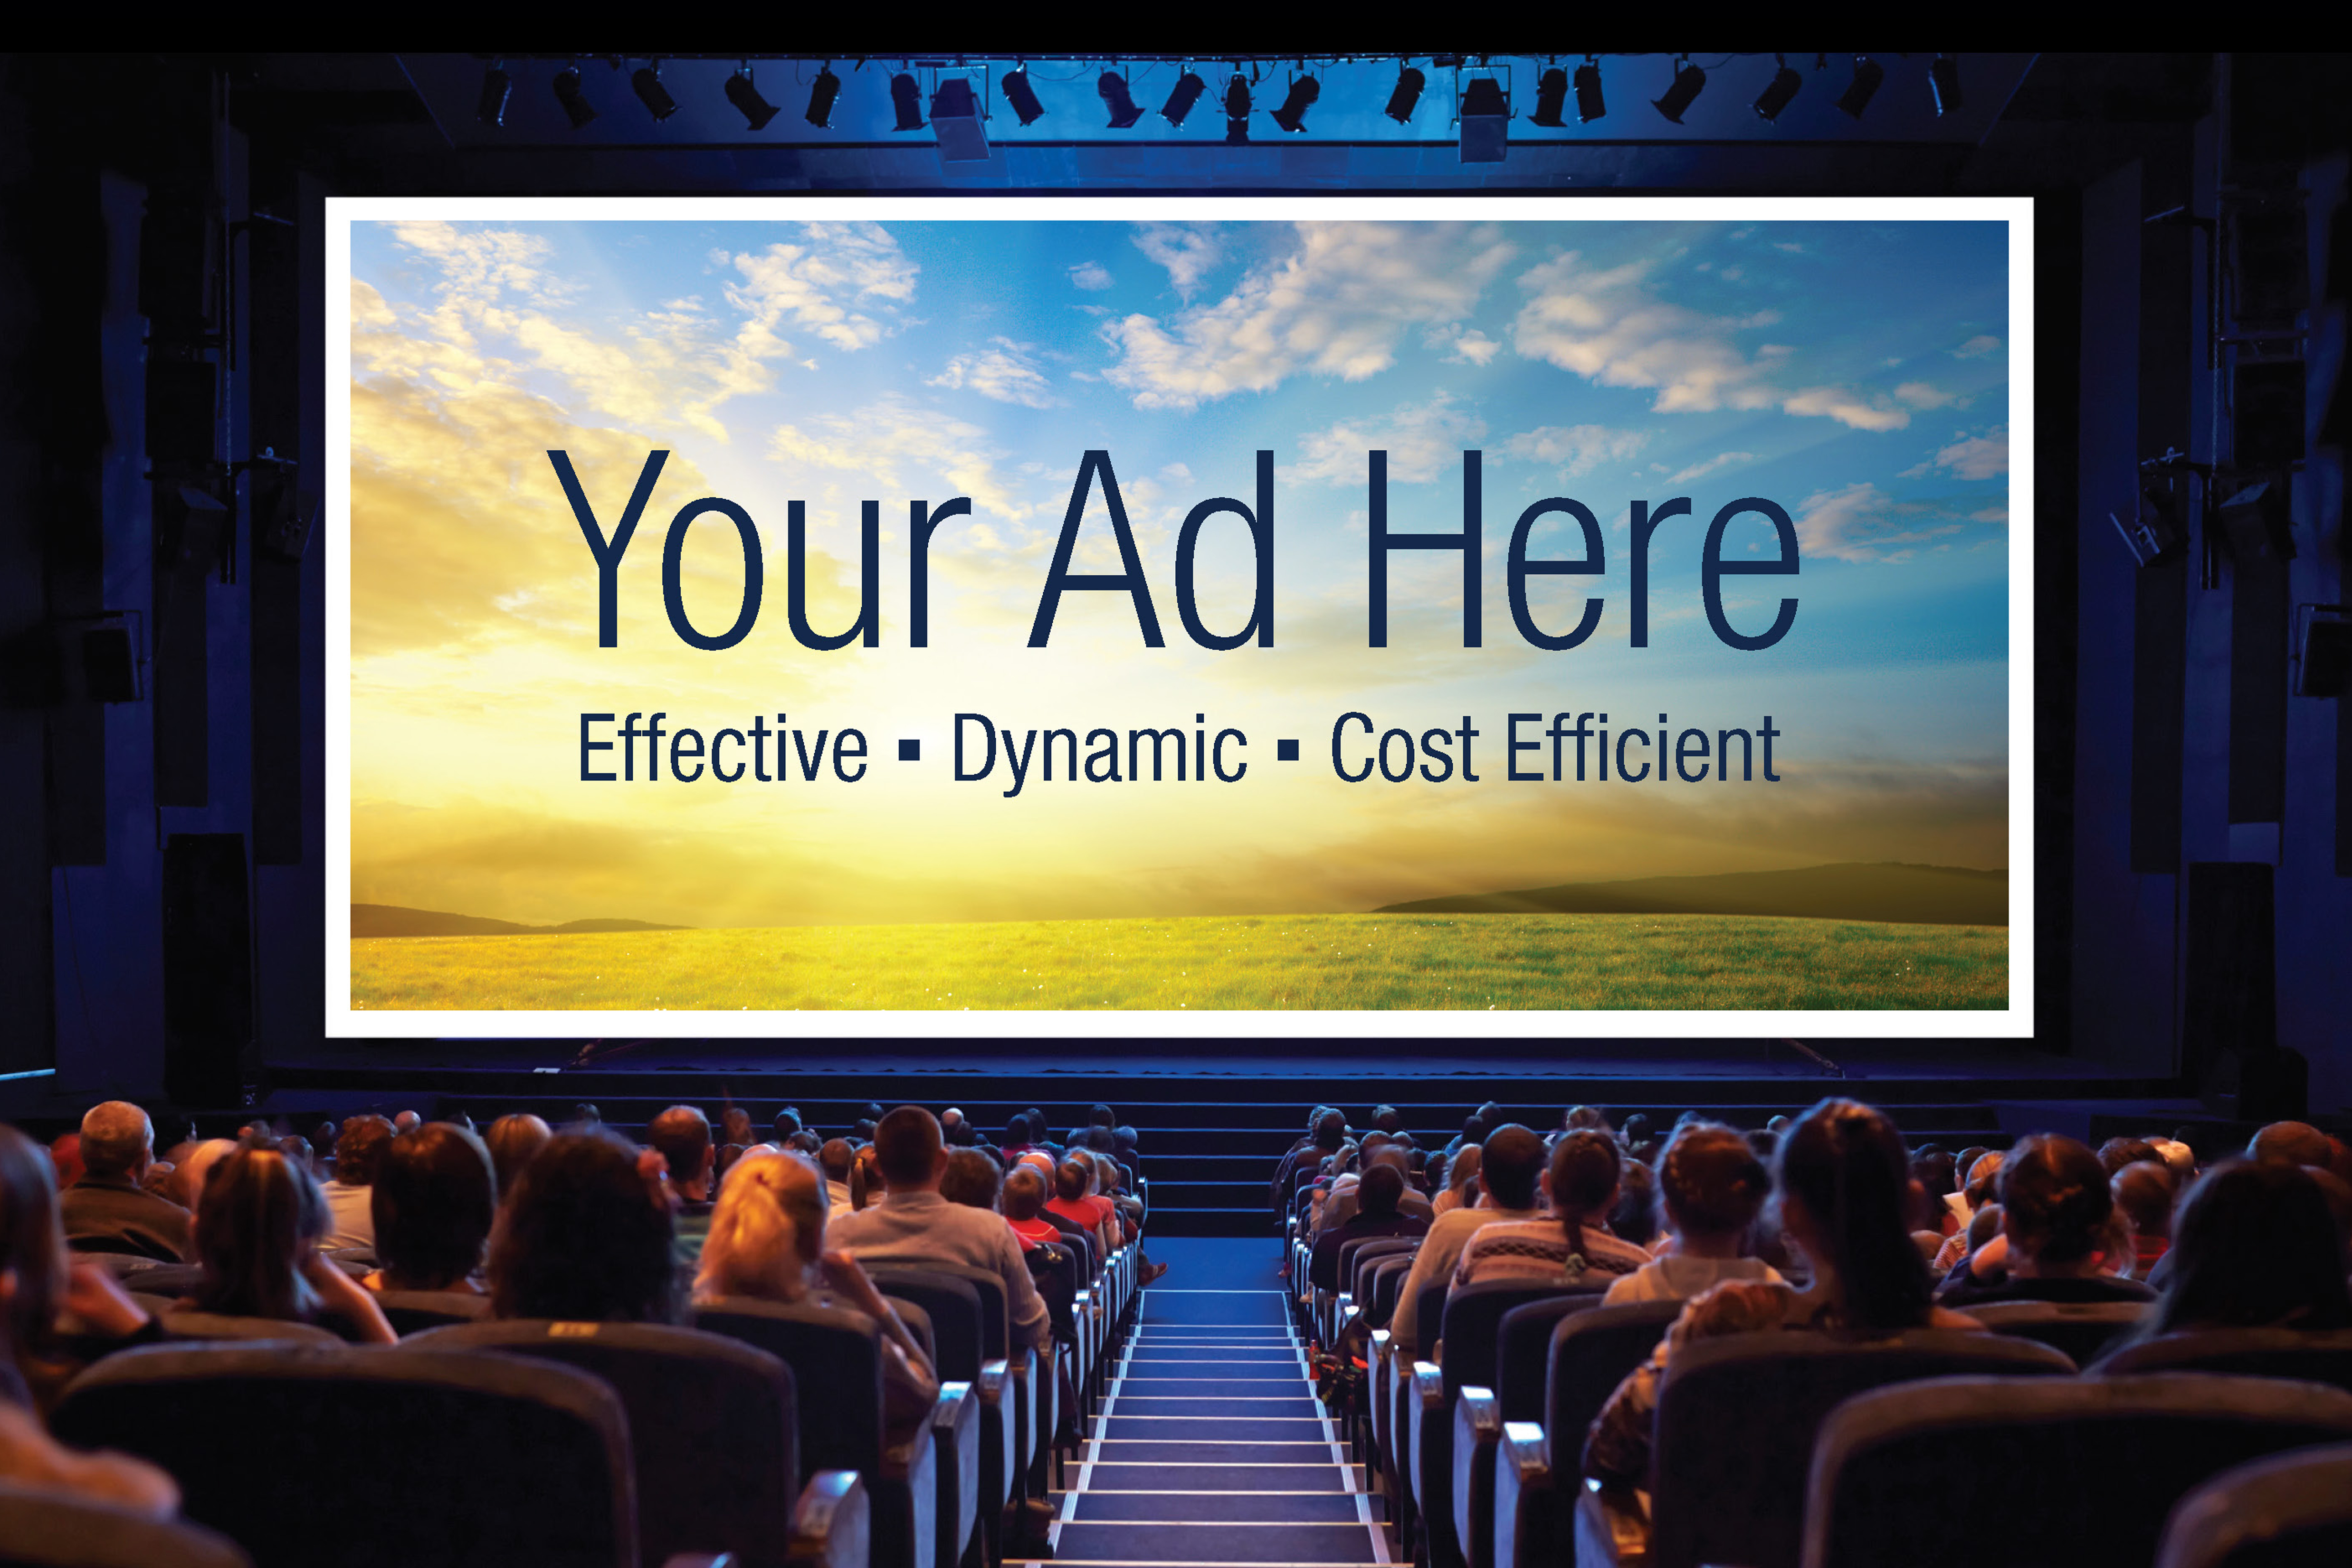 Your Ad Hear Pre-Screen advertising